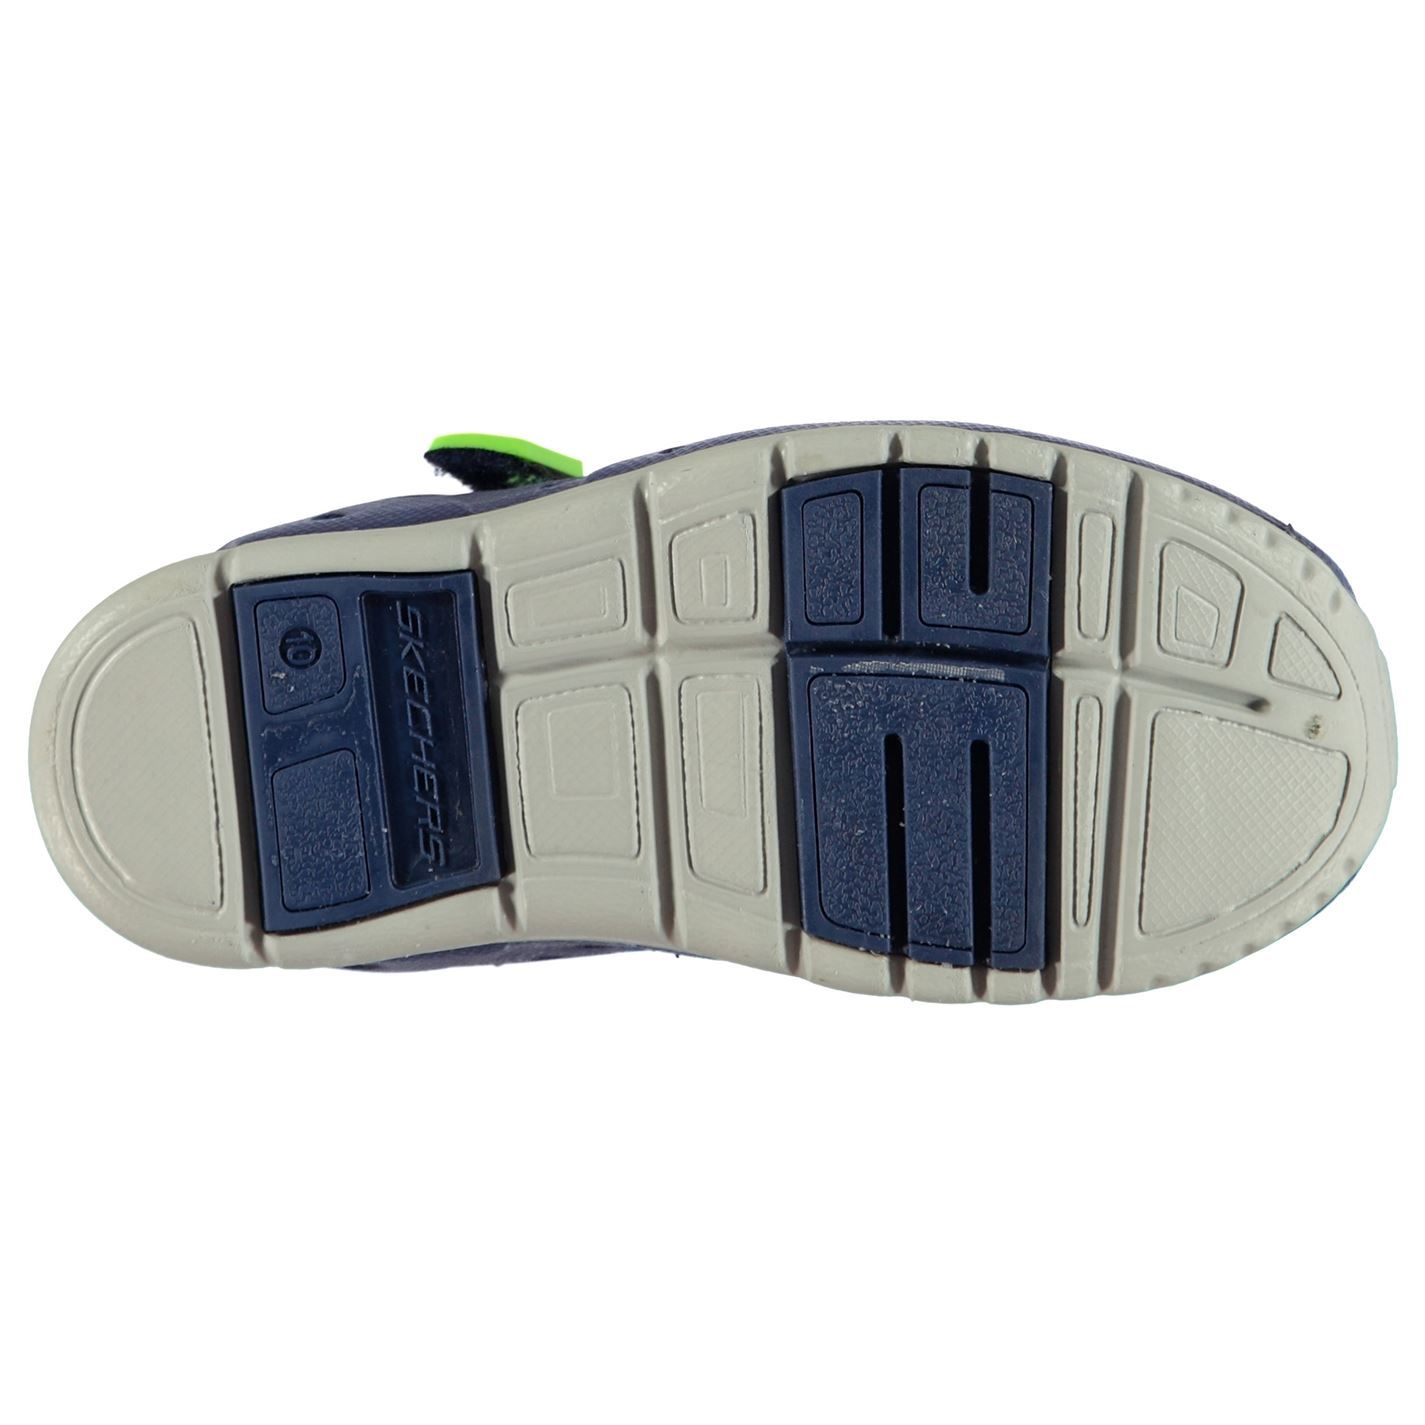 Details about Skechers Hydrozooms Splasher Water Shoes Infants Boys NavyLime Sandals Shoes